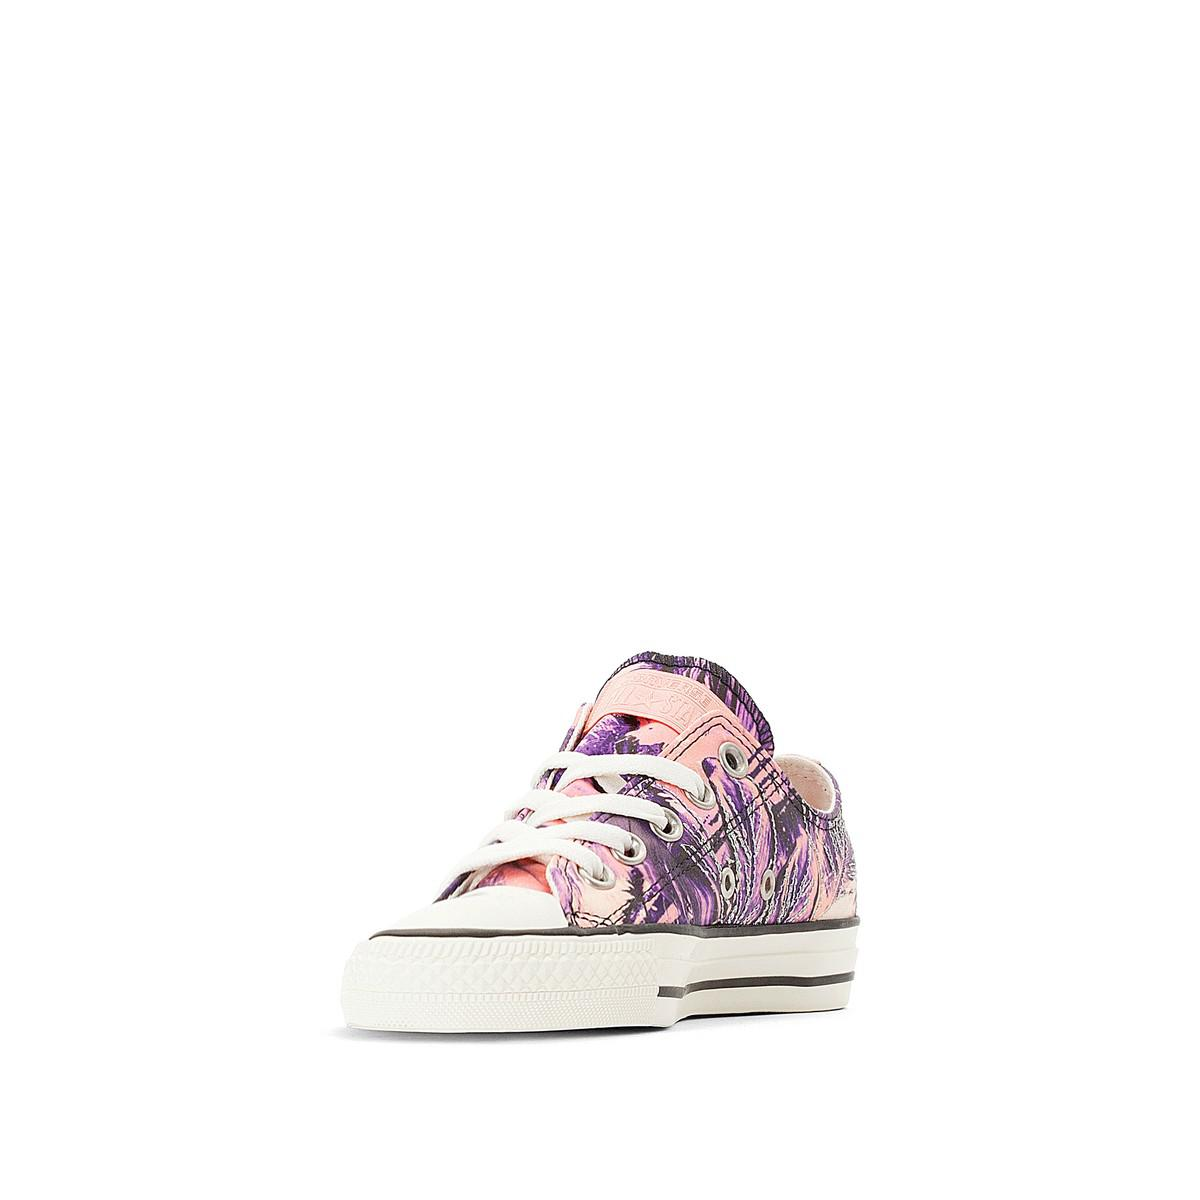 CONVERSE CTAS OX Feather Print Canvas Trainers clearance countdown package FQLvPK3